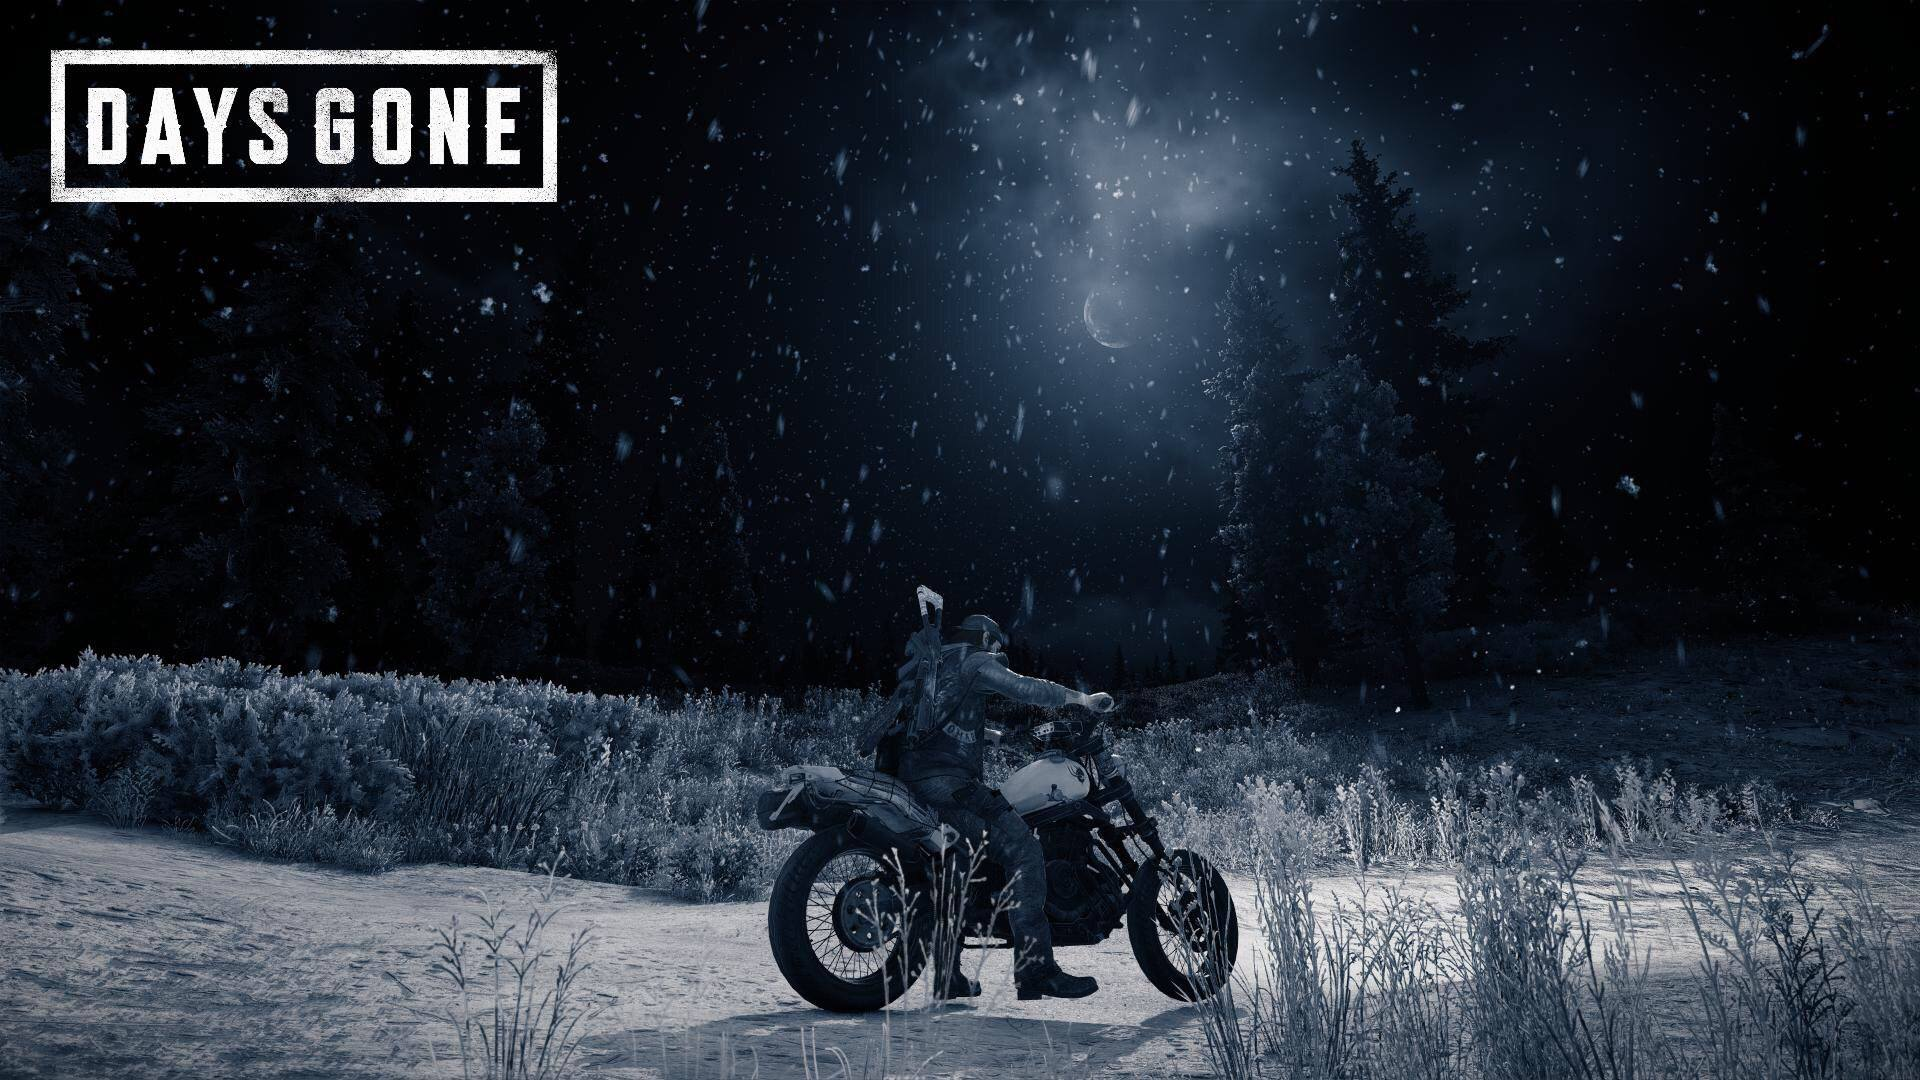 Days Gone Update 1.71 Patch Notes (Days Gone 1.71)